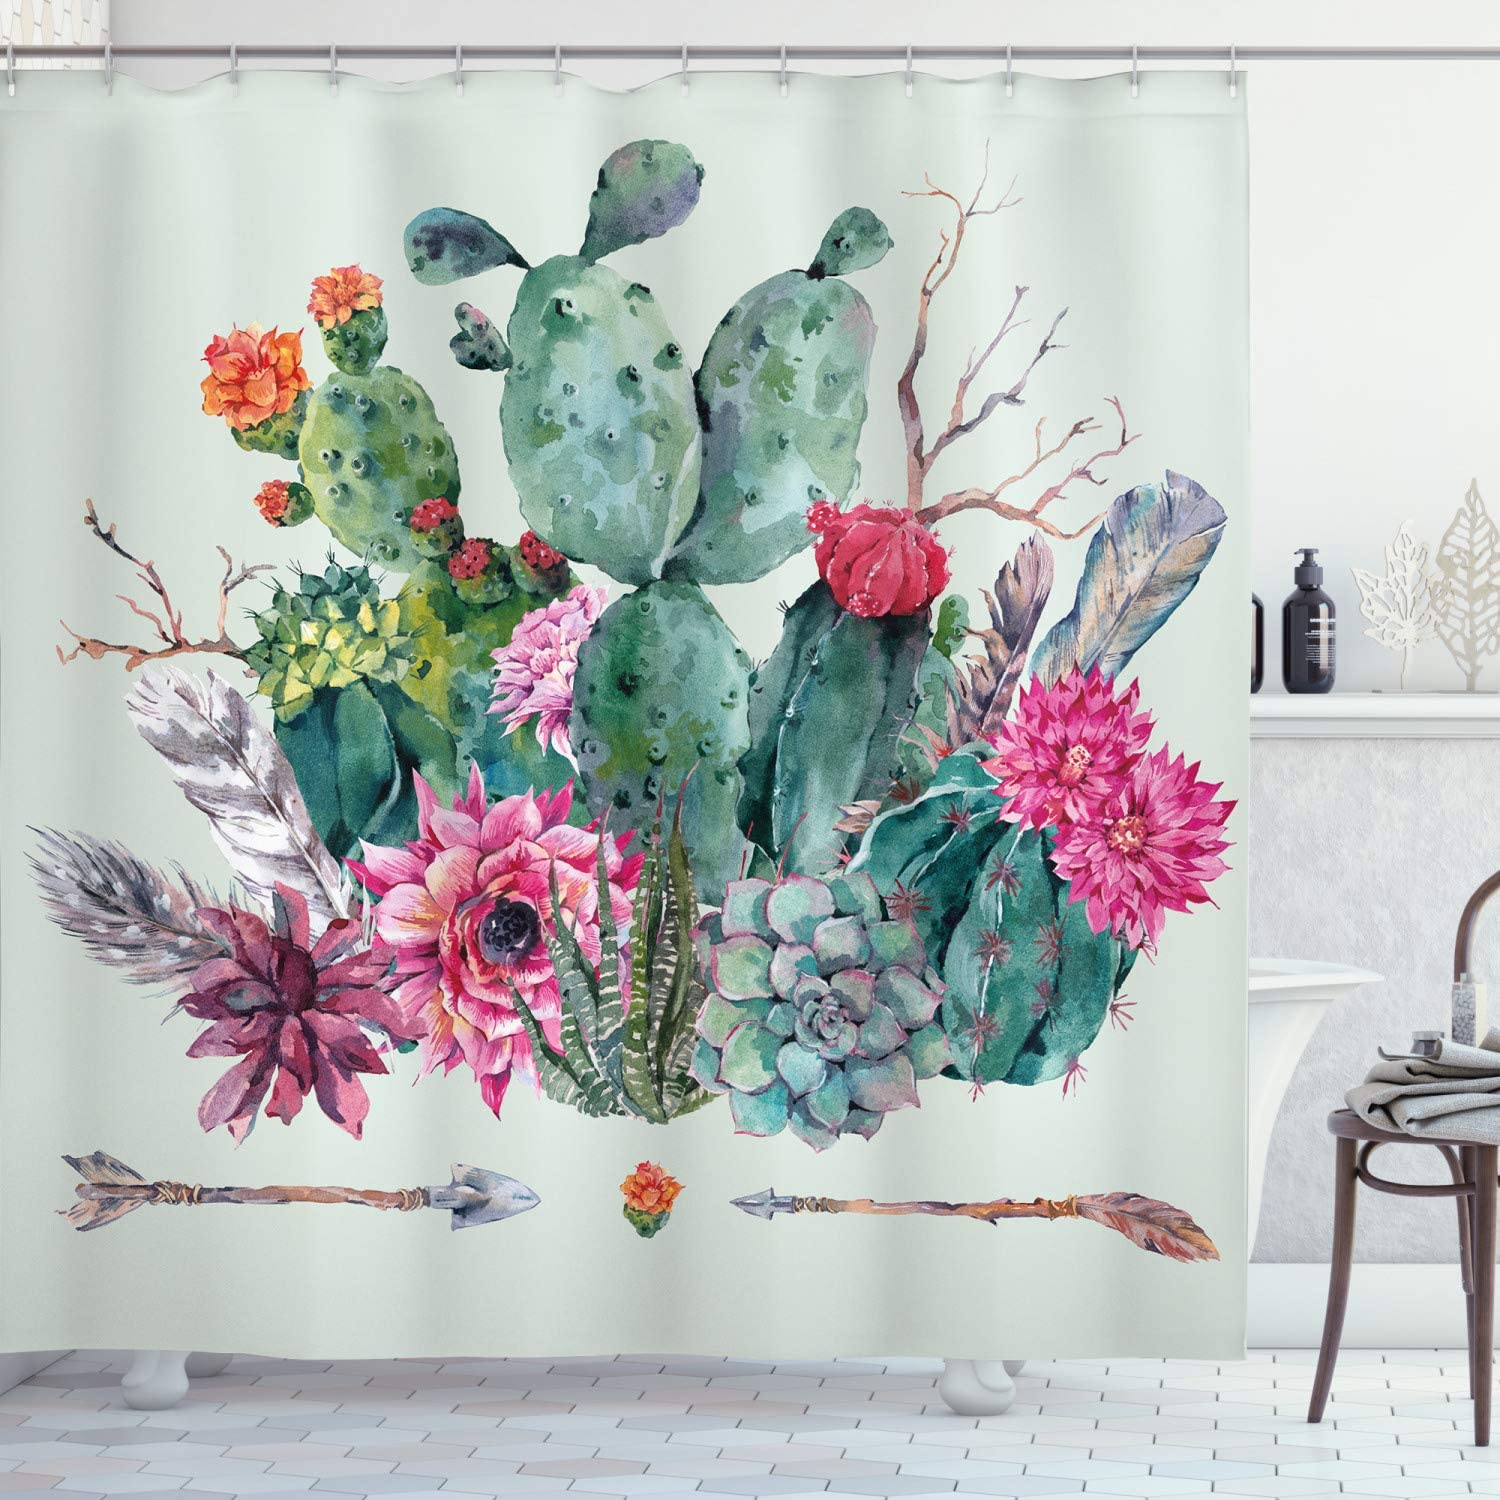 Ambesonne Cactus Shower Curtain, Spring Garden with Boho Style Bouquet of Thorny Plants Blossoms Arrows Feathers, Cloth Fabric Bathroom Decor Set with Hooks, 70